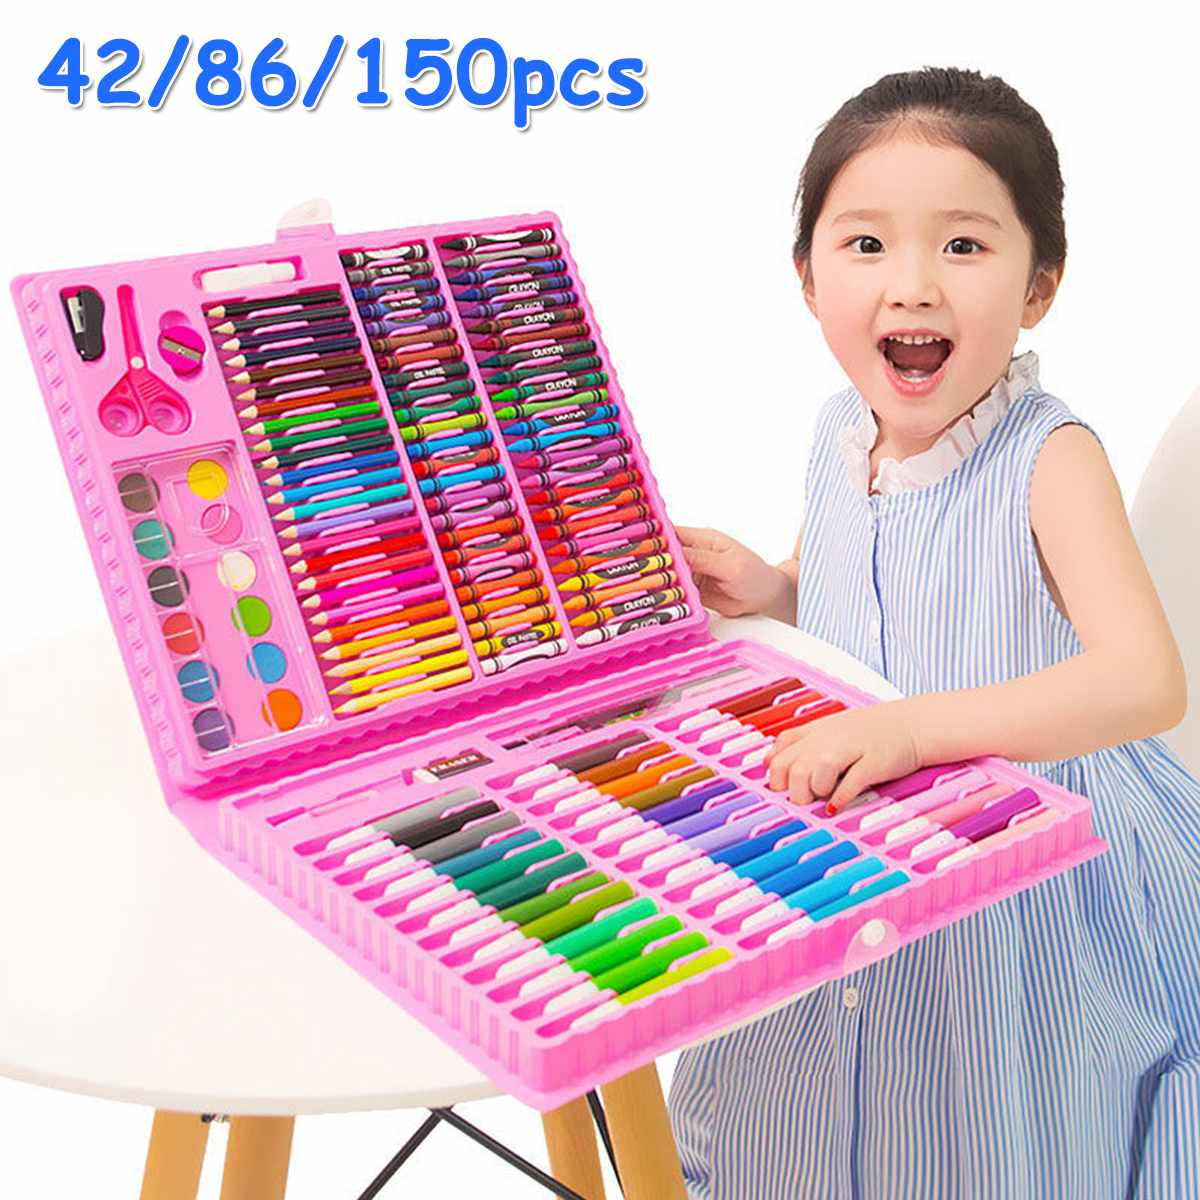 150PCS Colored Pencil Artist Kit Painting Crayon Marker Pen Brush Drawing Tools Set Kindergarten Drawing Supplies Kids Gufts